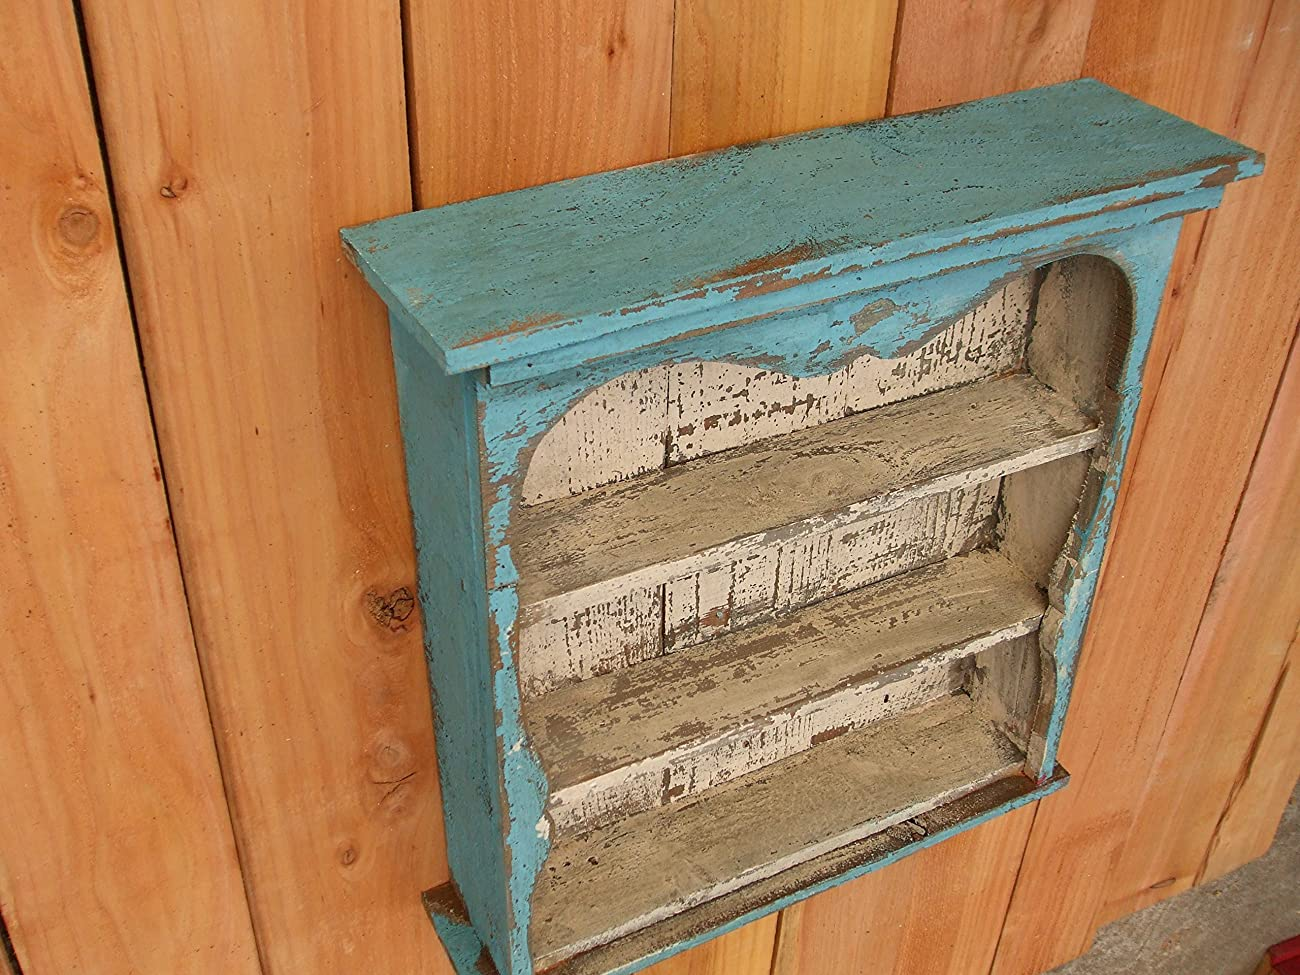 Shabby Chic Style Blue Wall Shelf, Distressed Turquoise, Book Shelf, French Country, Shadow Box, Display Case, CEDAR, HANDMADE	 3